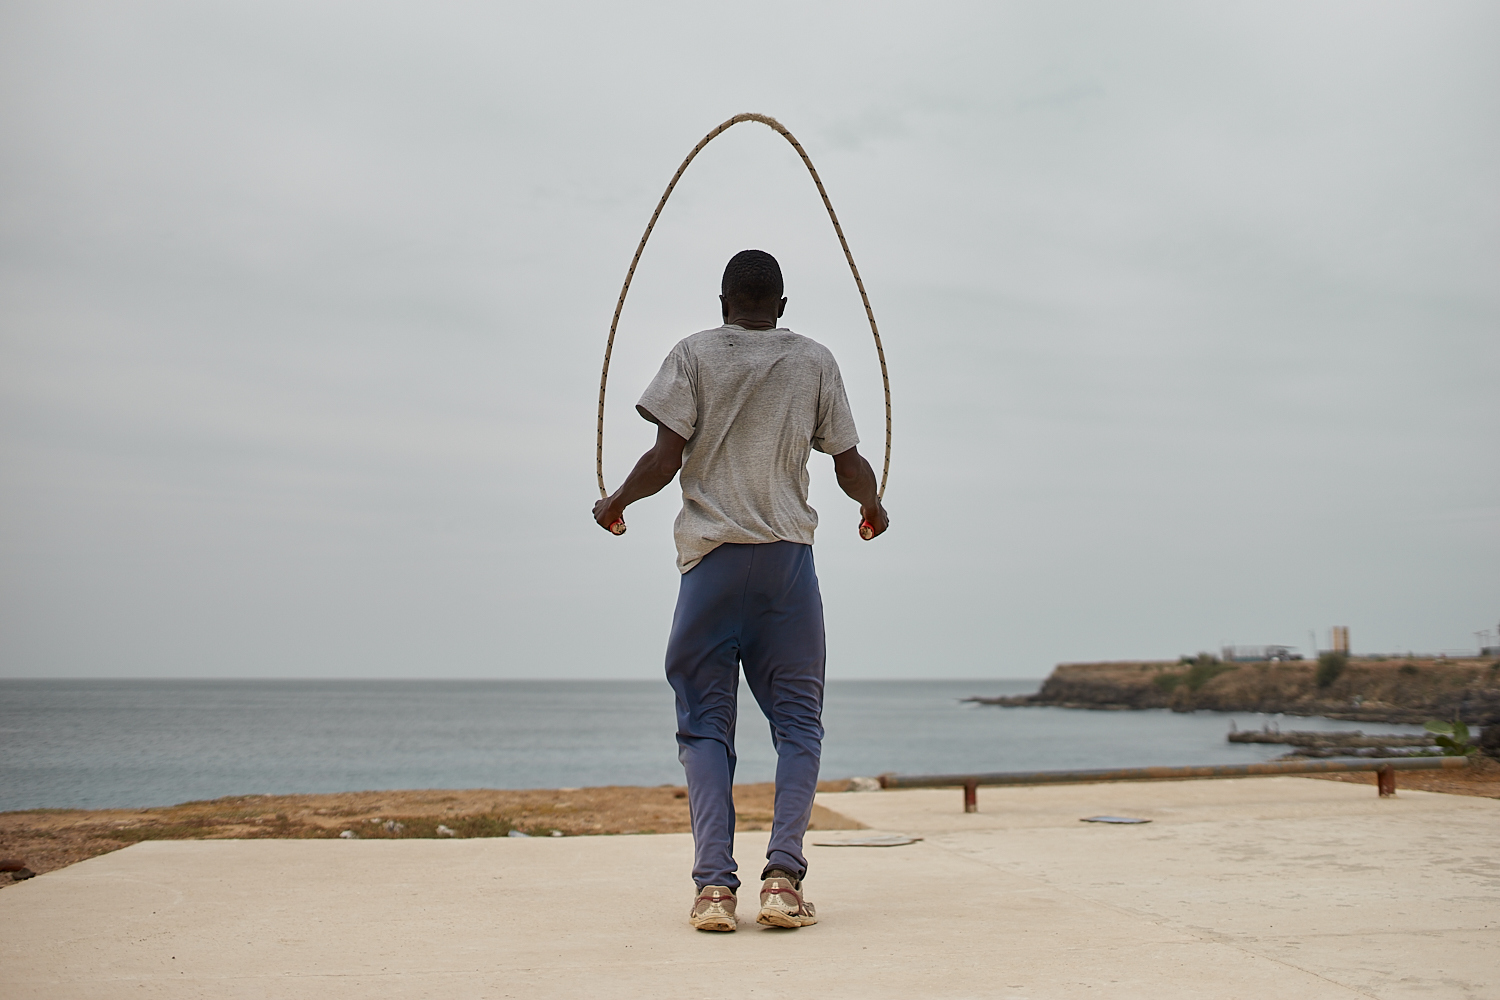 Facing the Ocean, Dakar, SN, 2016